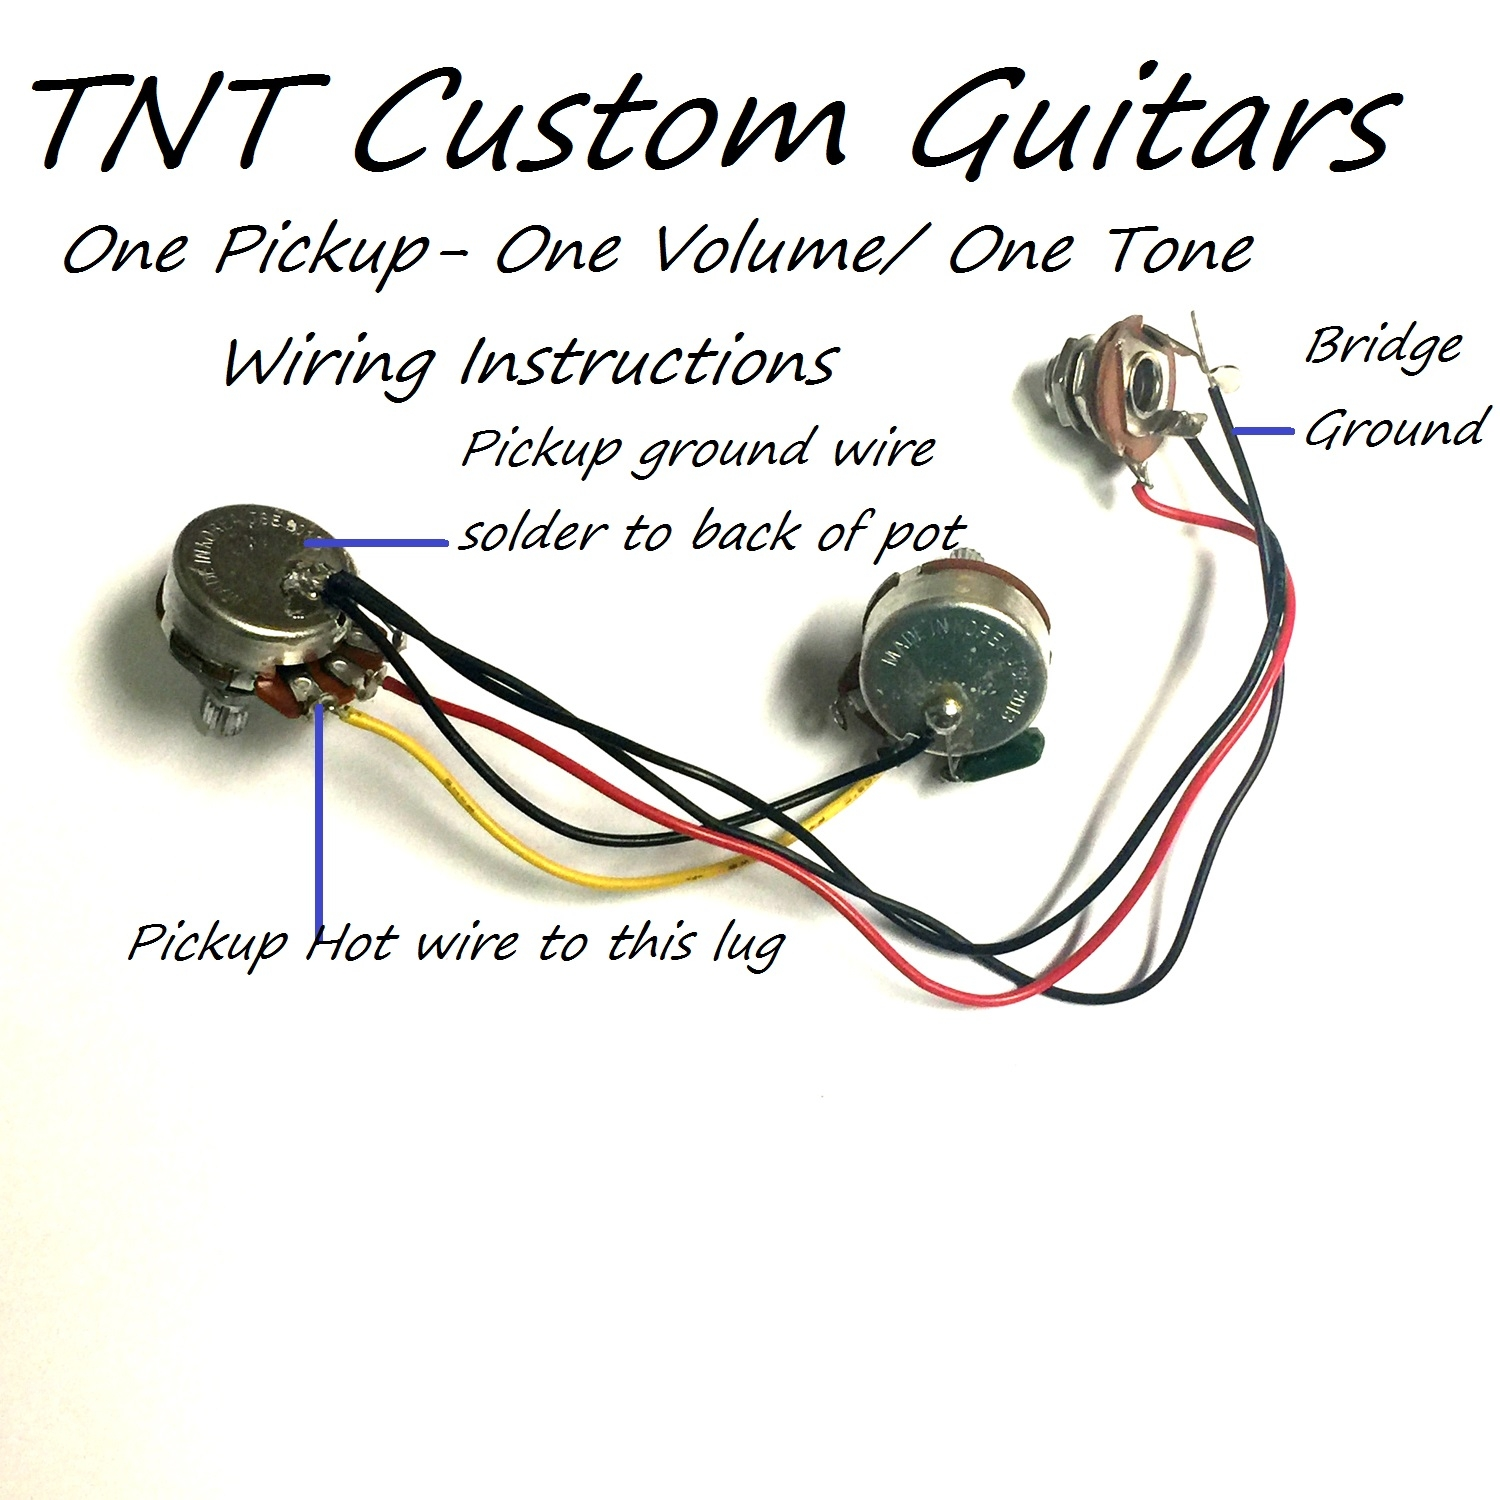 One Humbucker Wiring Harness For Sale Car Diagrams Explained Epiphone 1 Tone Volume Guitar Diagram 1v1t Pickup Standard Vol Prewired Rh Dragonfireguitars Com Single Coil